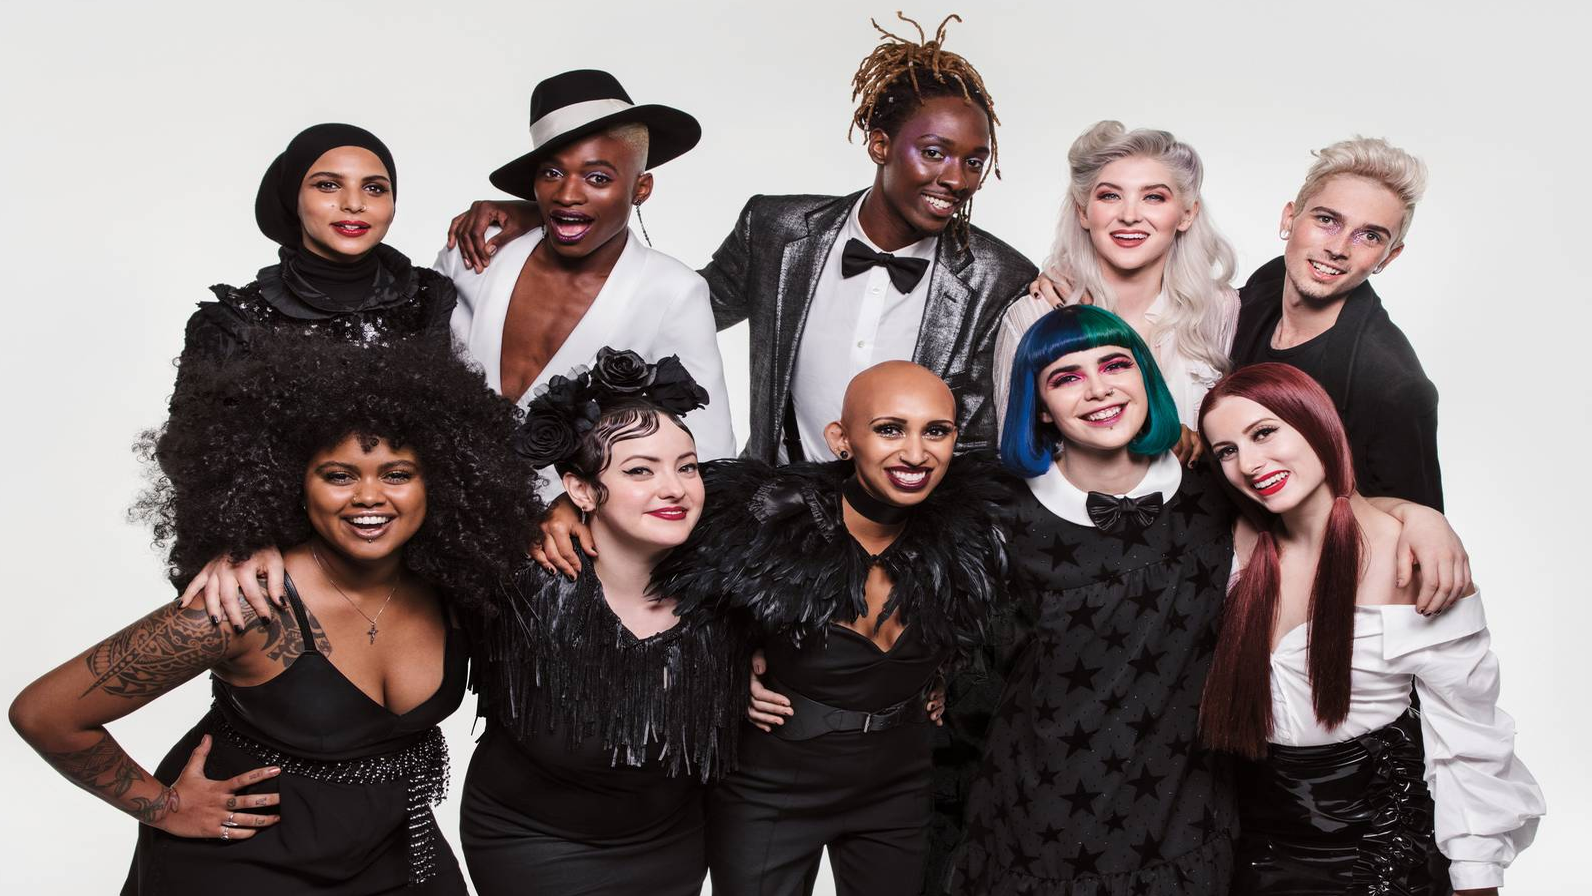 Sephora's Holiday Campaign Is Its Most Diverse Yet